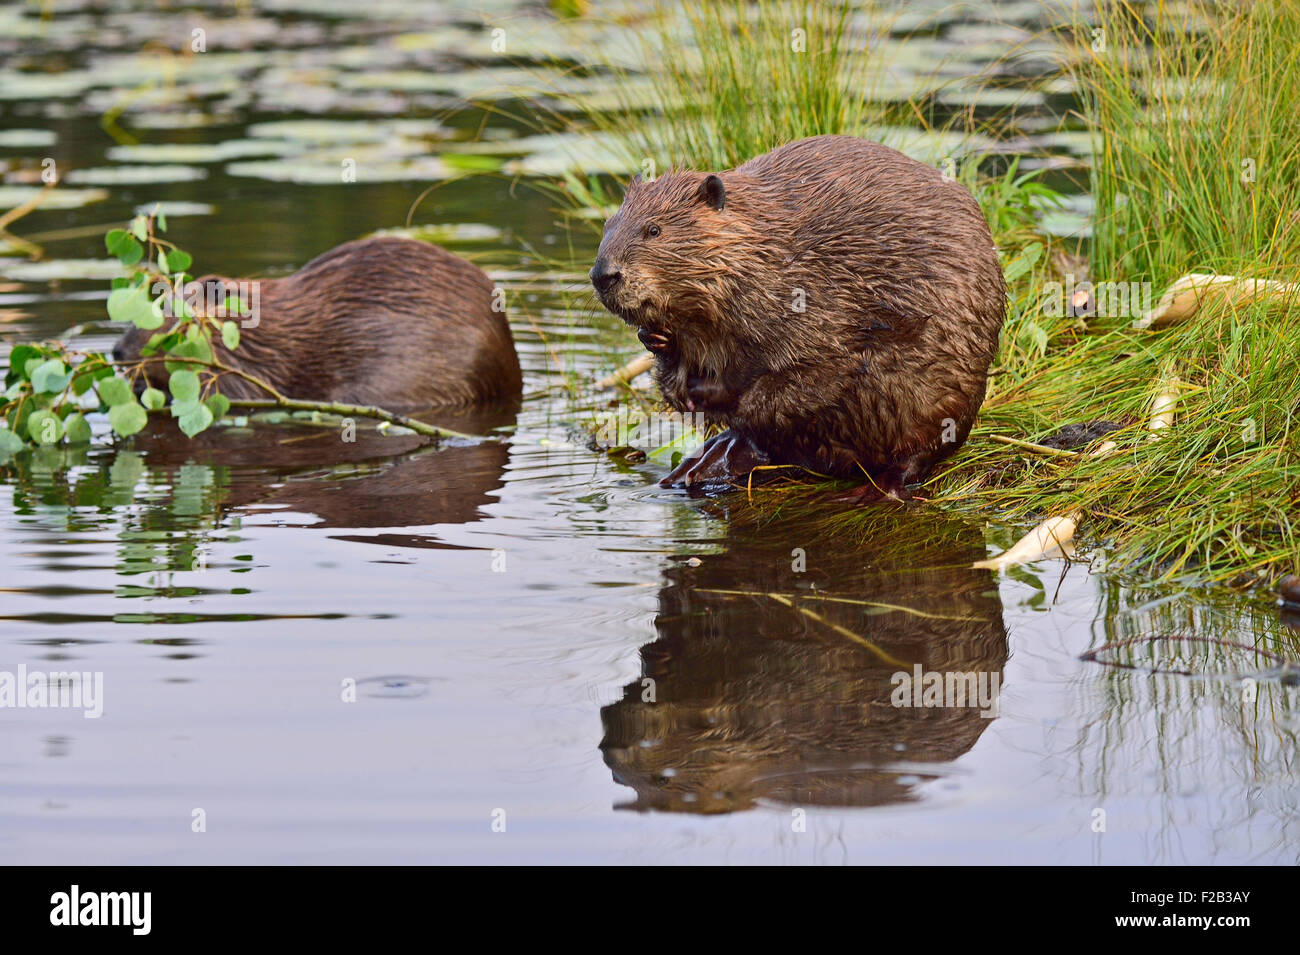 A wild Canadian beaver  'Castor canadenis'  making funny faces as he scratches and cleans his fur - Stock Image